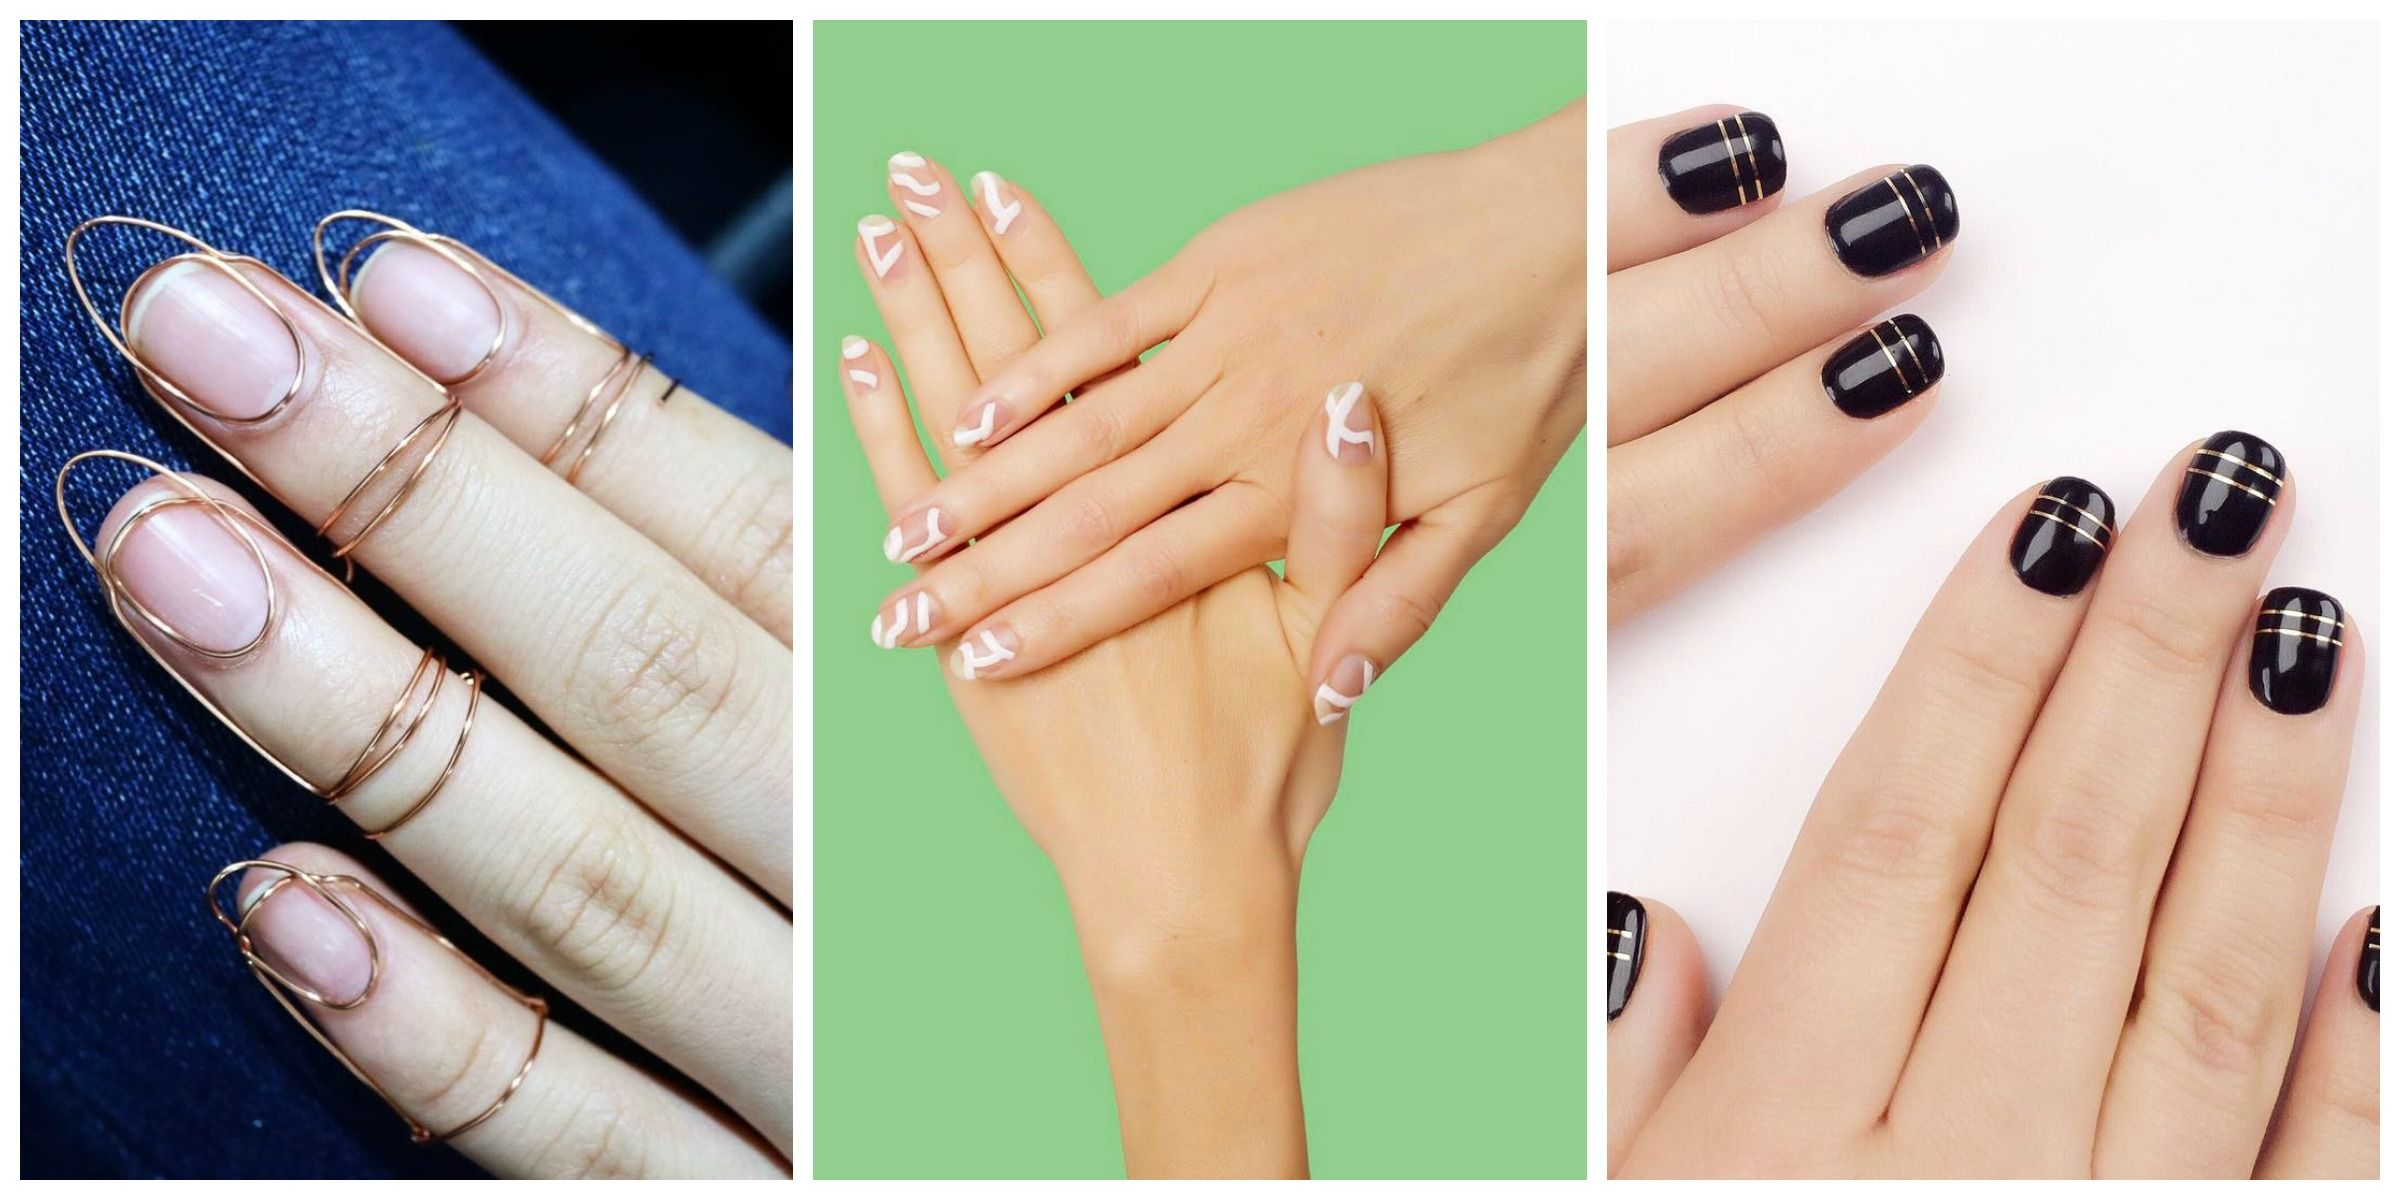 15 Grown-up Ways to Wear Nail Art